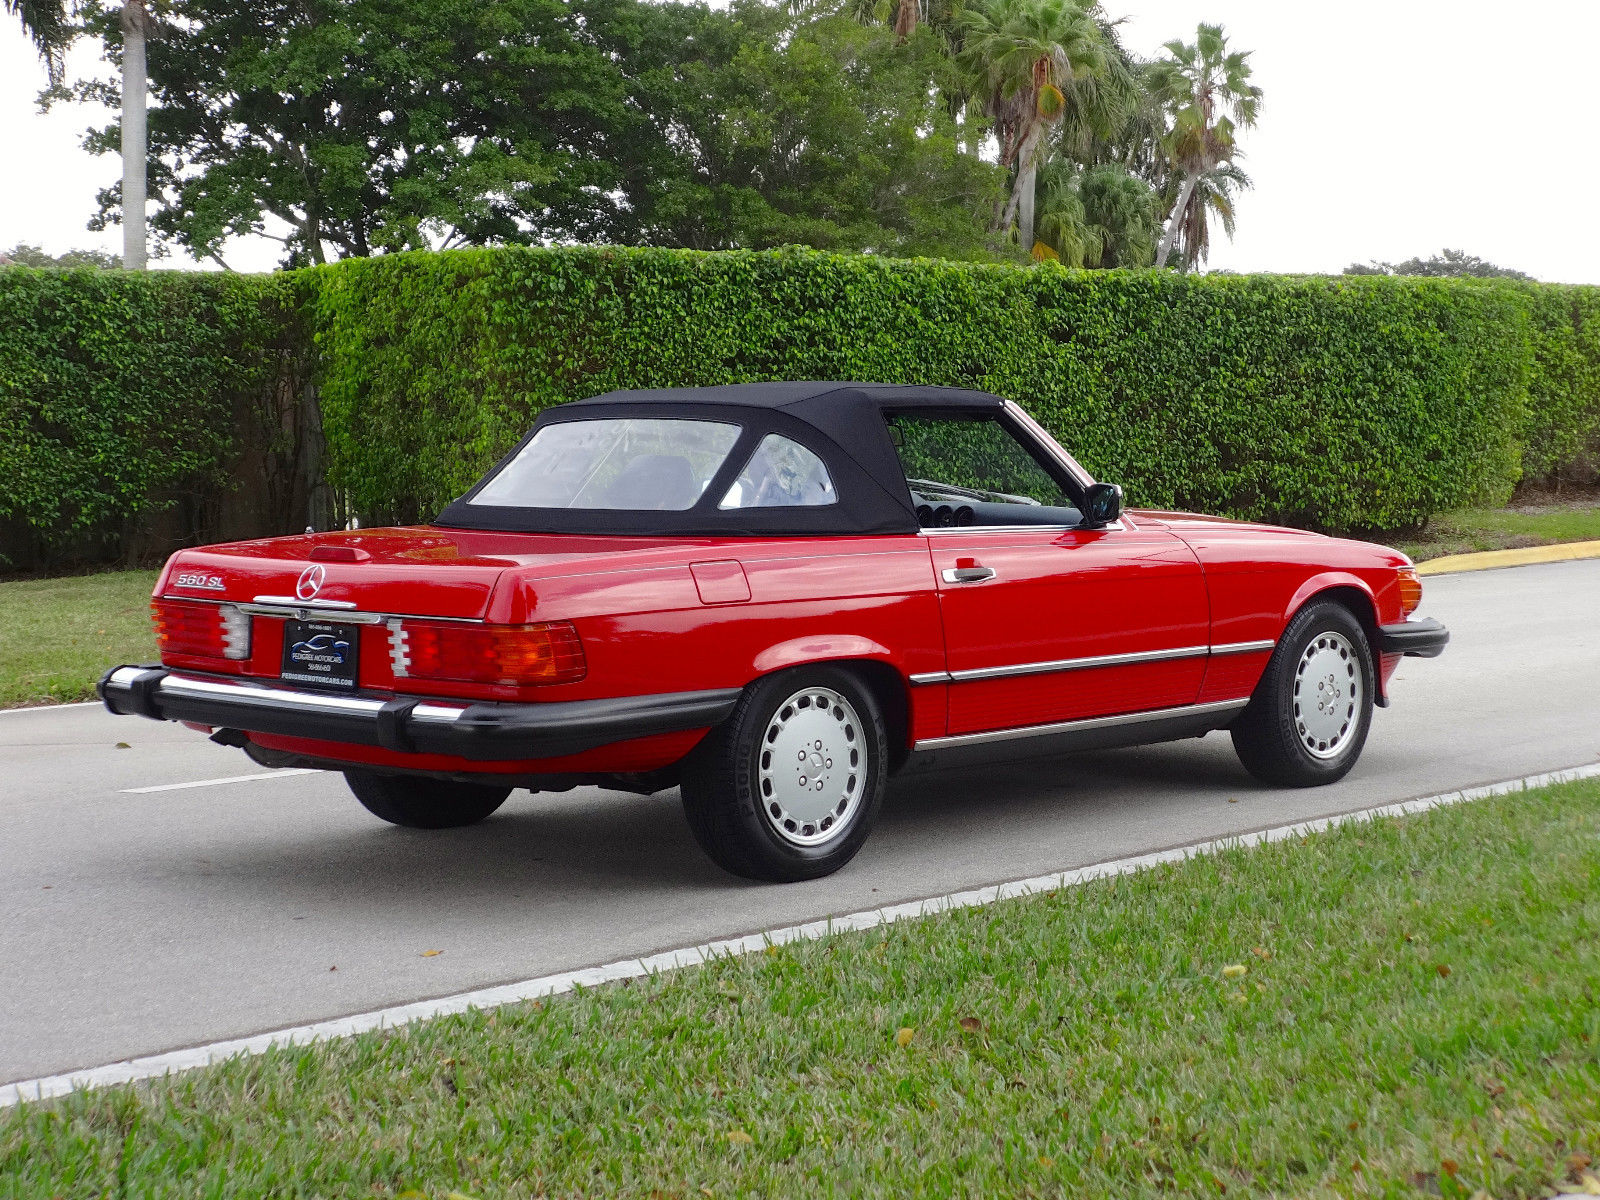 1988 mercedes benz 560sl convertible one owner florida for Florida mercedes benz